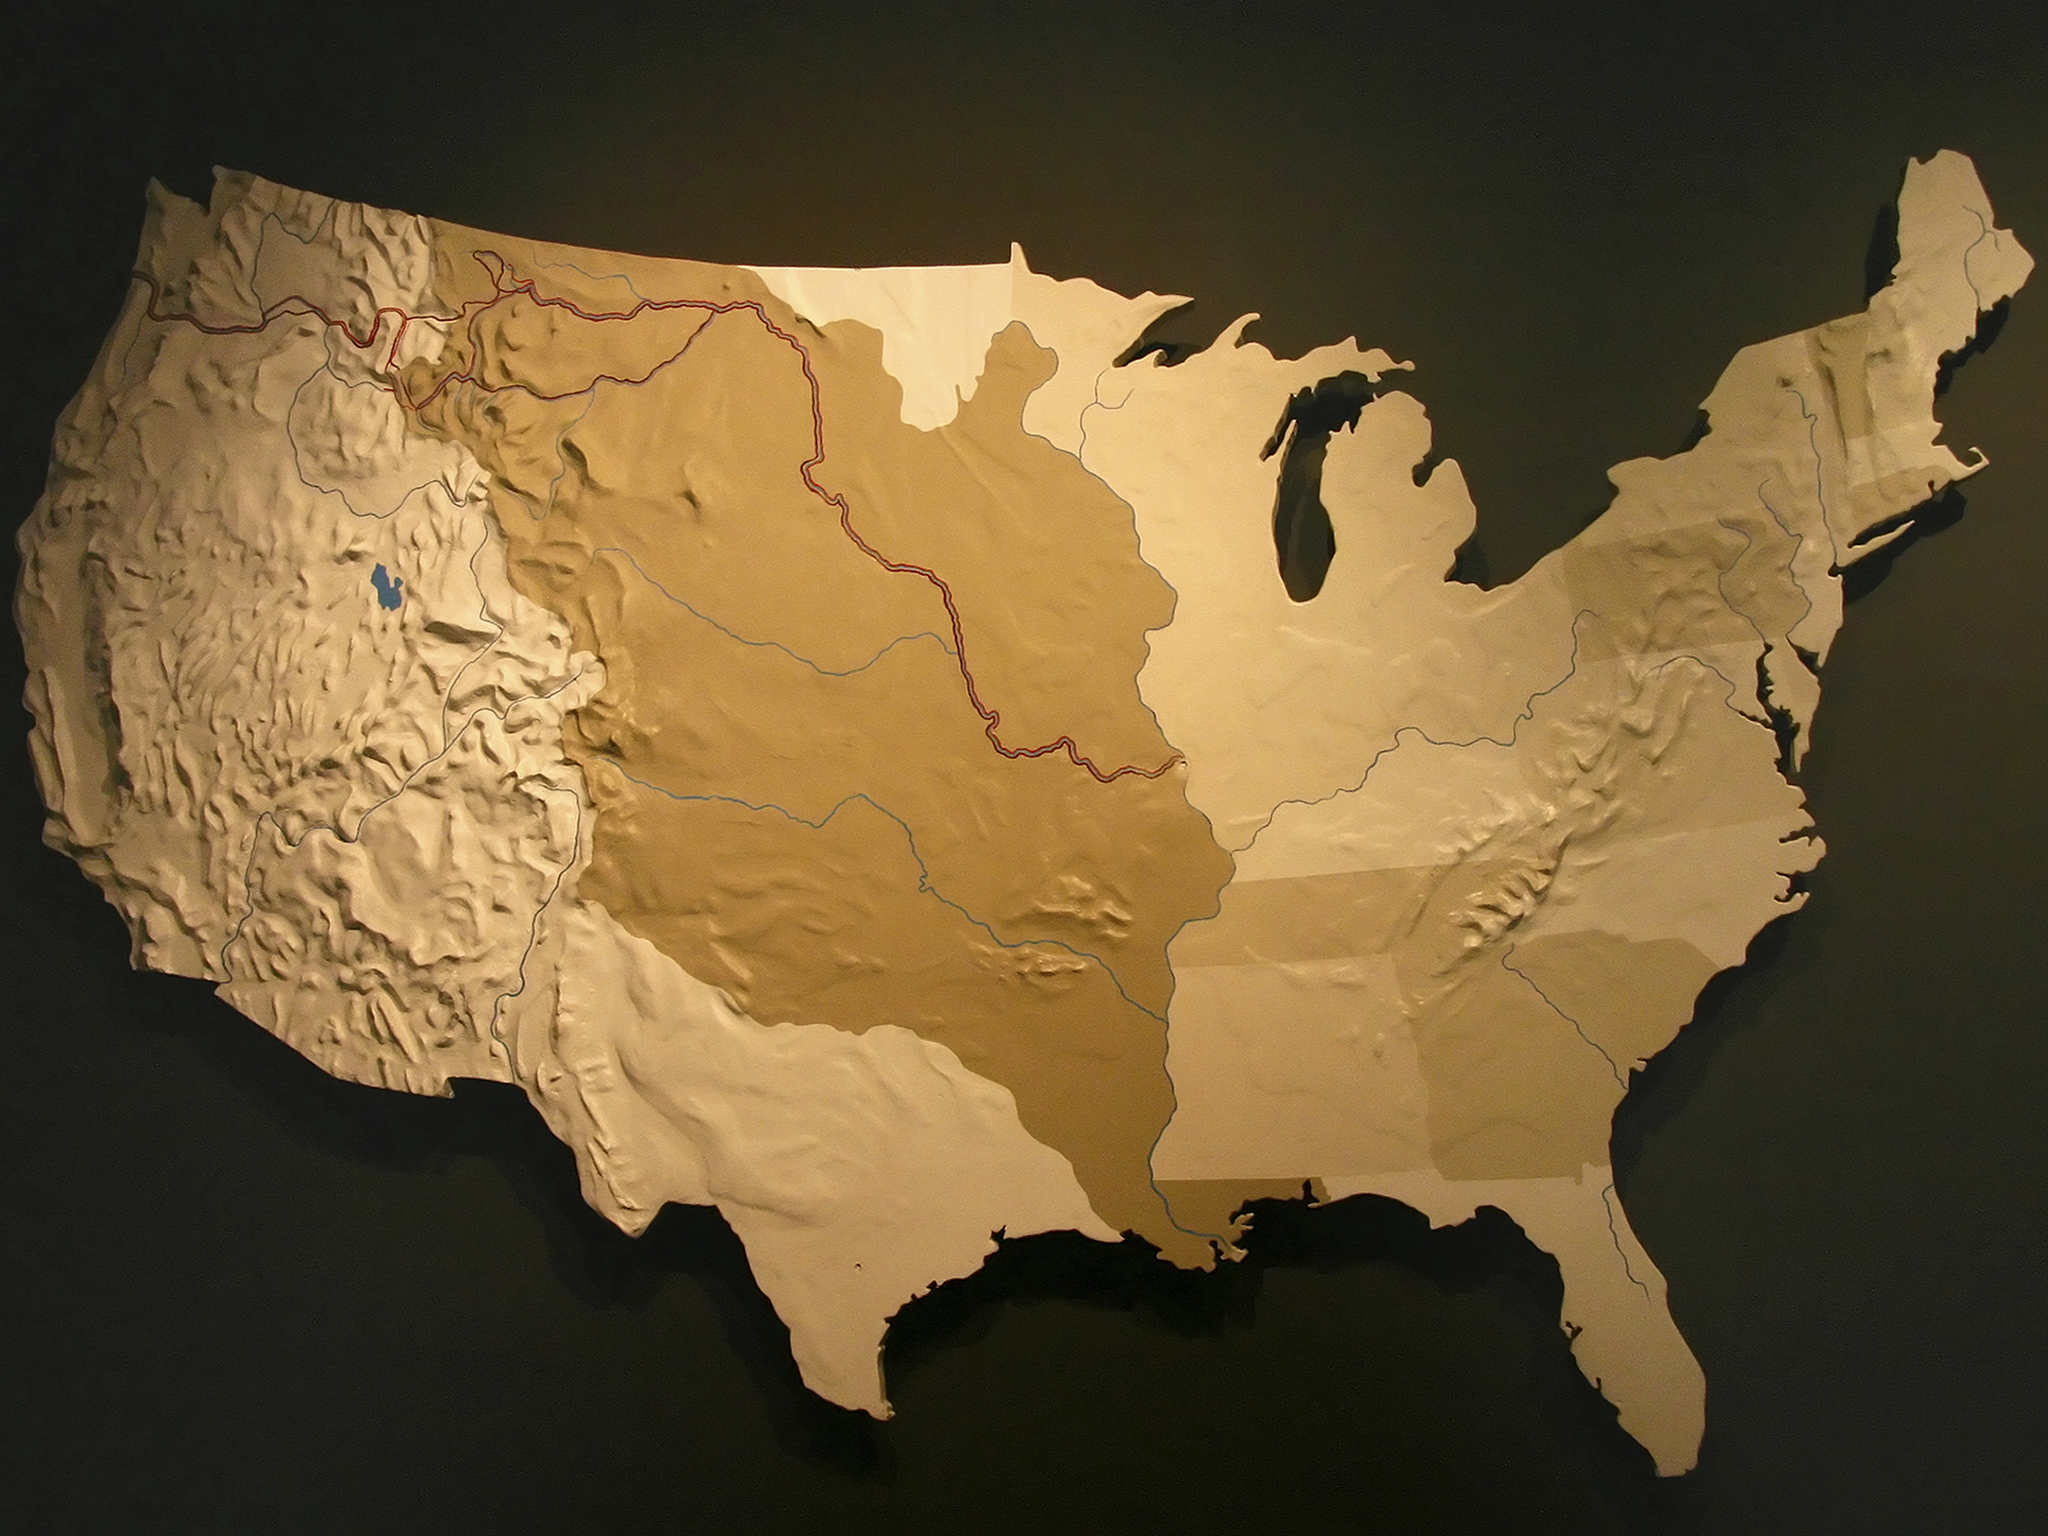 8 Things You May Not Know About The Louisiana Purchase